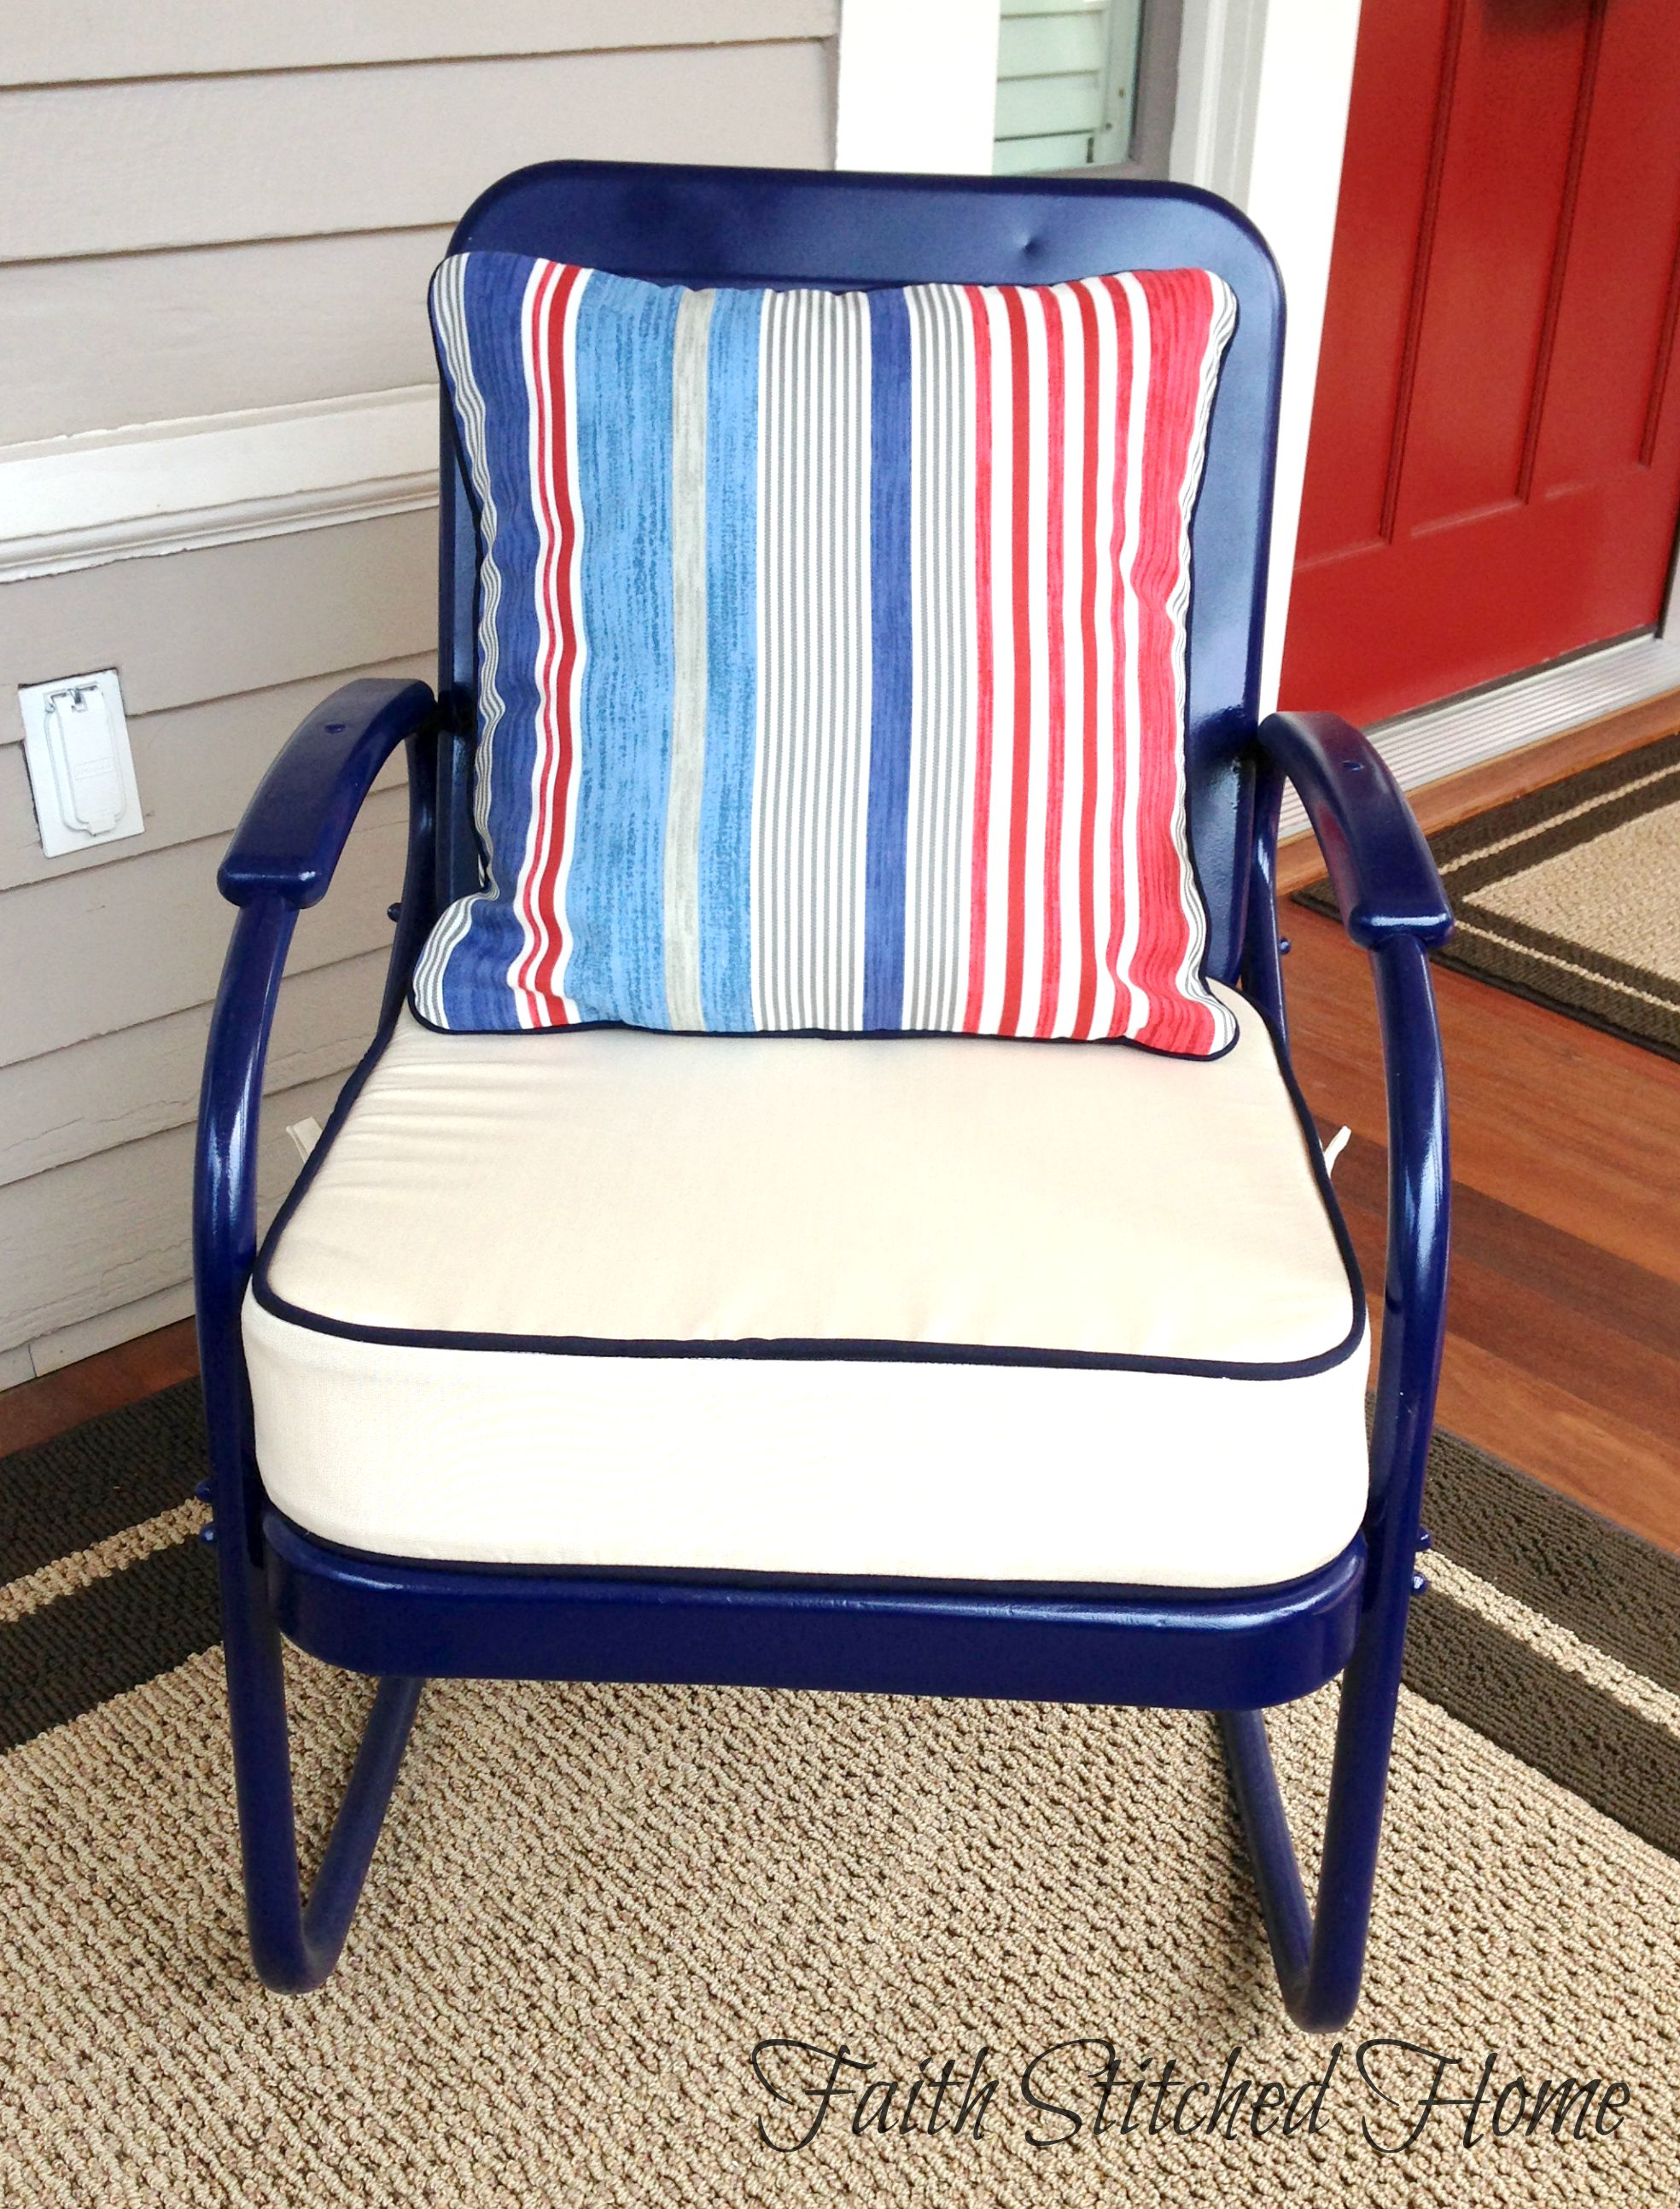 metal kitchen chair cushions best baby height chairs upholstered for a vintage porch set faith